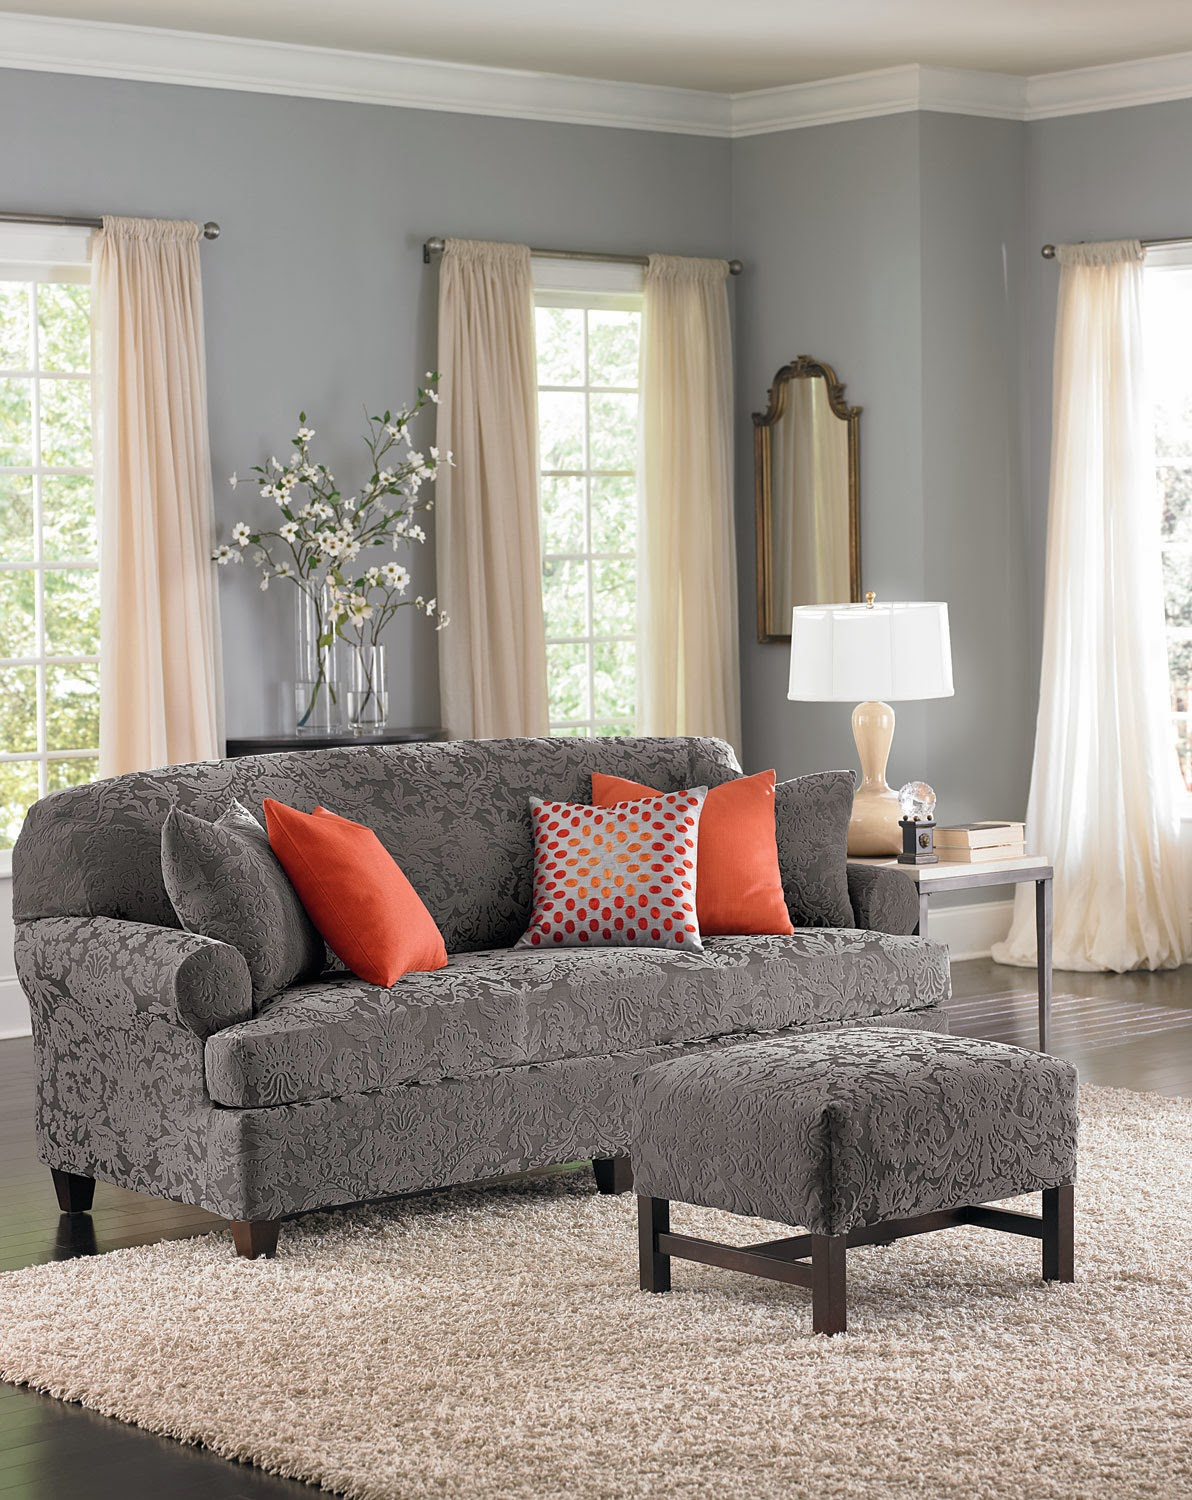 Gray Chair And Ottoman Slipcovers Bedroom Hanging Cheap Sure Fit Slipcovers: What's Our New Hue? -- Grey Blue!